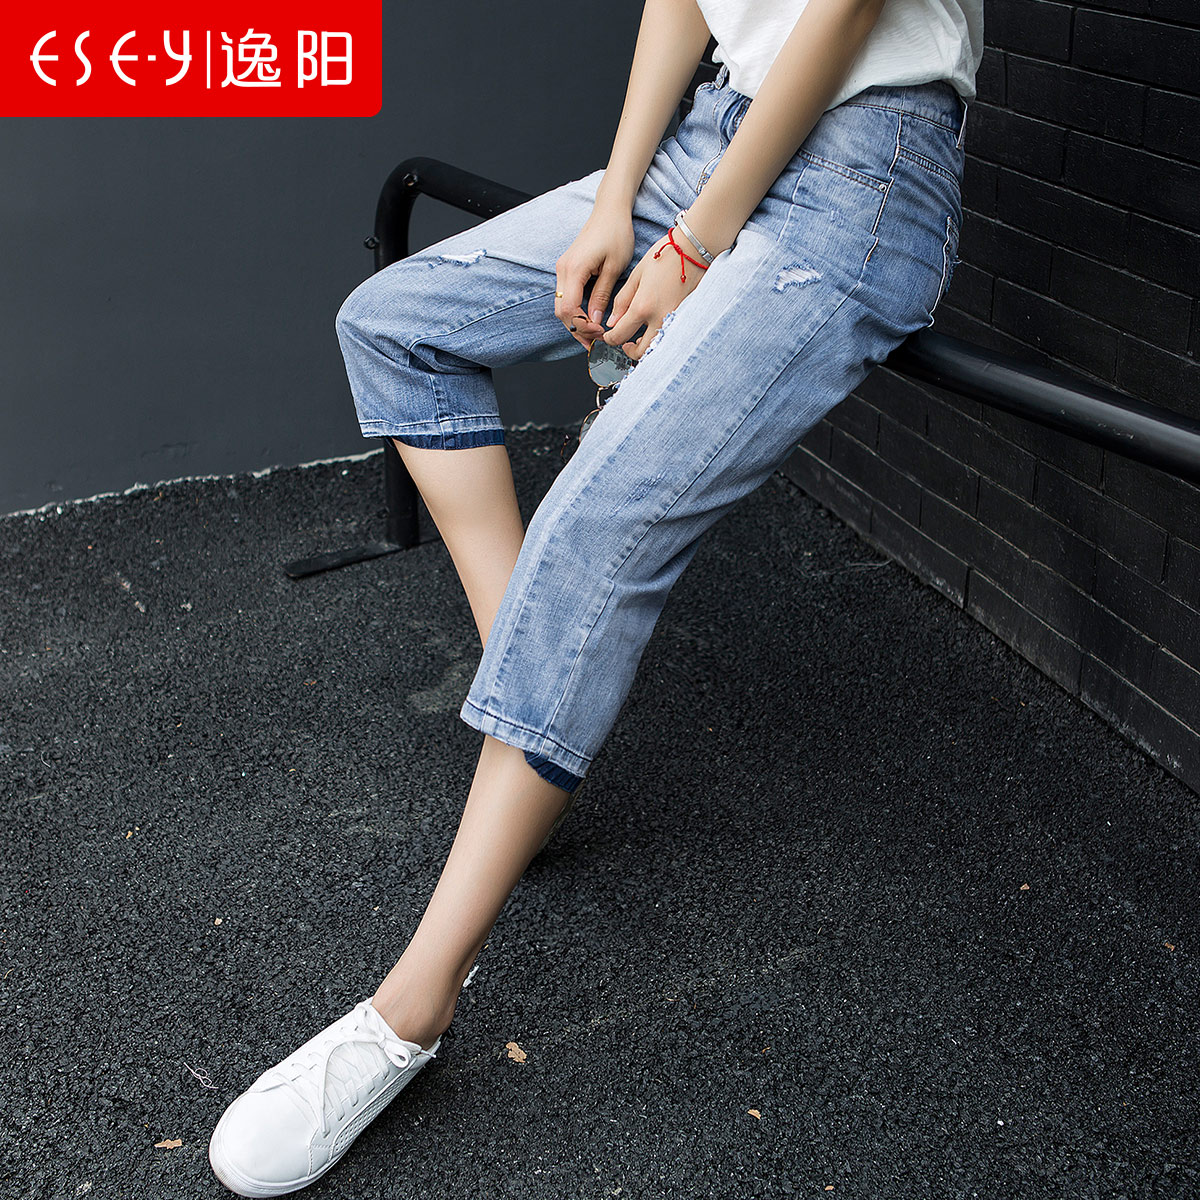 a3f2aaba5fc4 Get Quotations · Yi yang pants 2016 new summer half colored hole jeans  pants female eighths wide leg pants